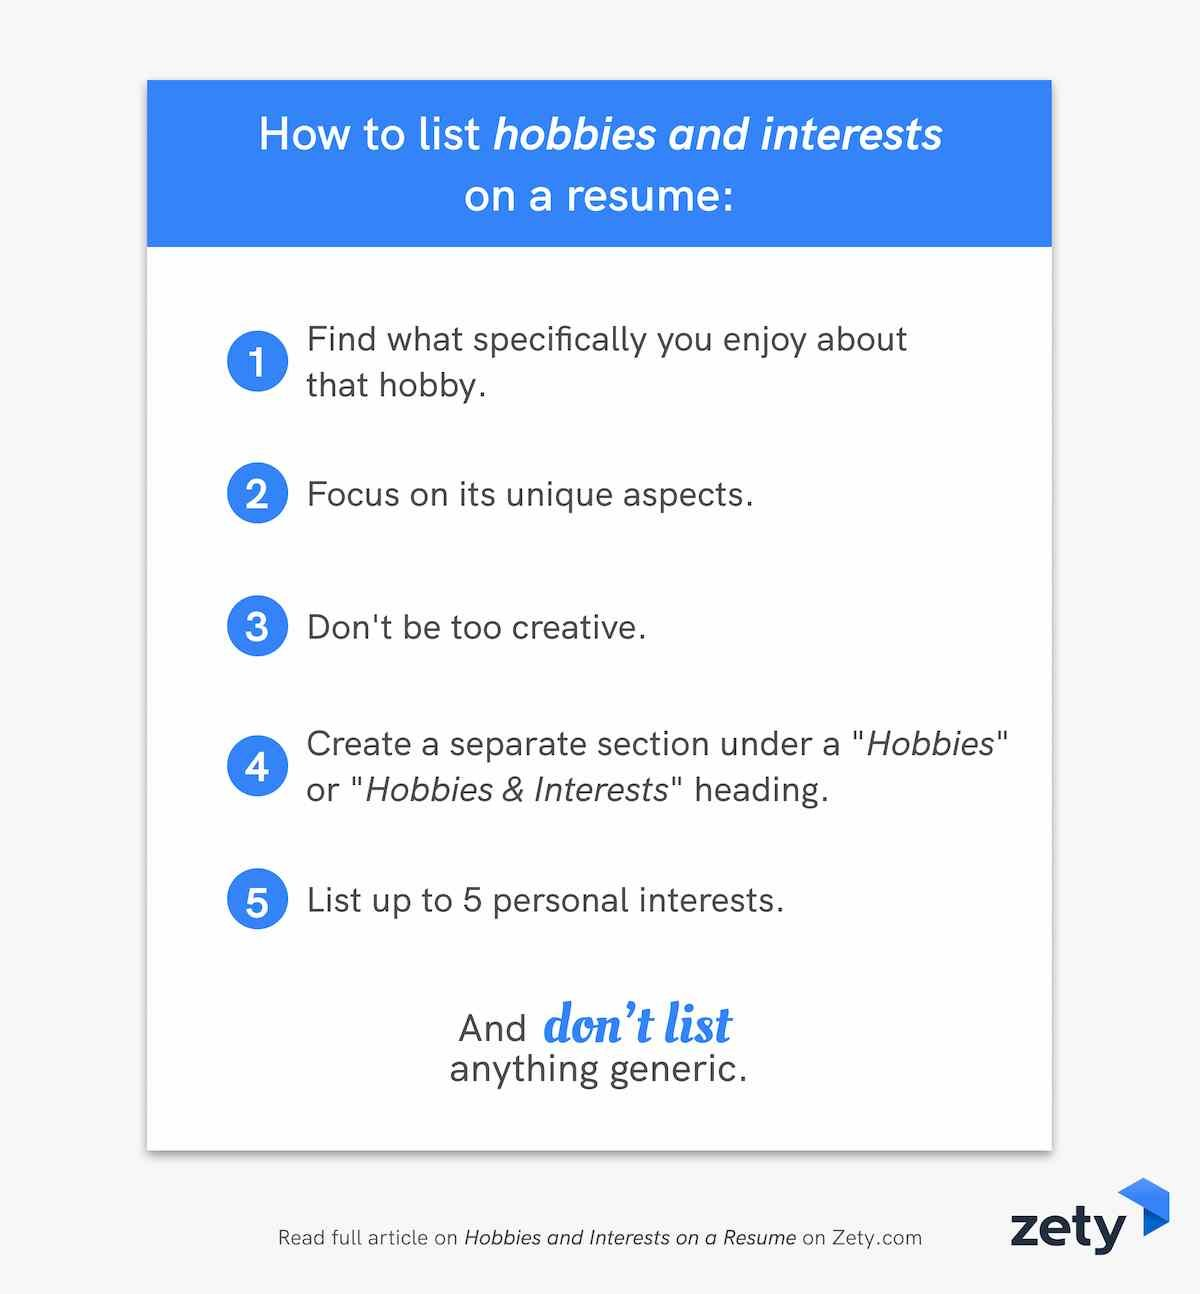 How to list hobbies and interests on a resume